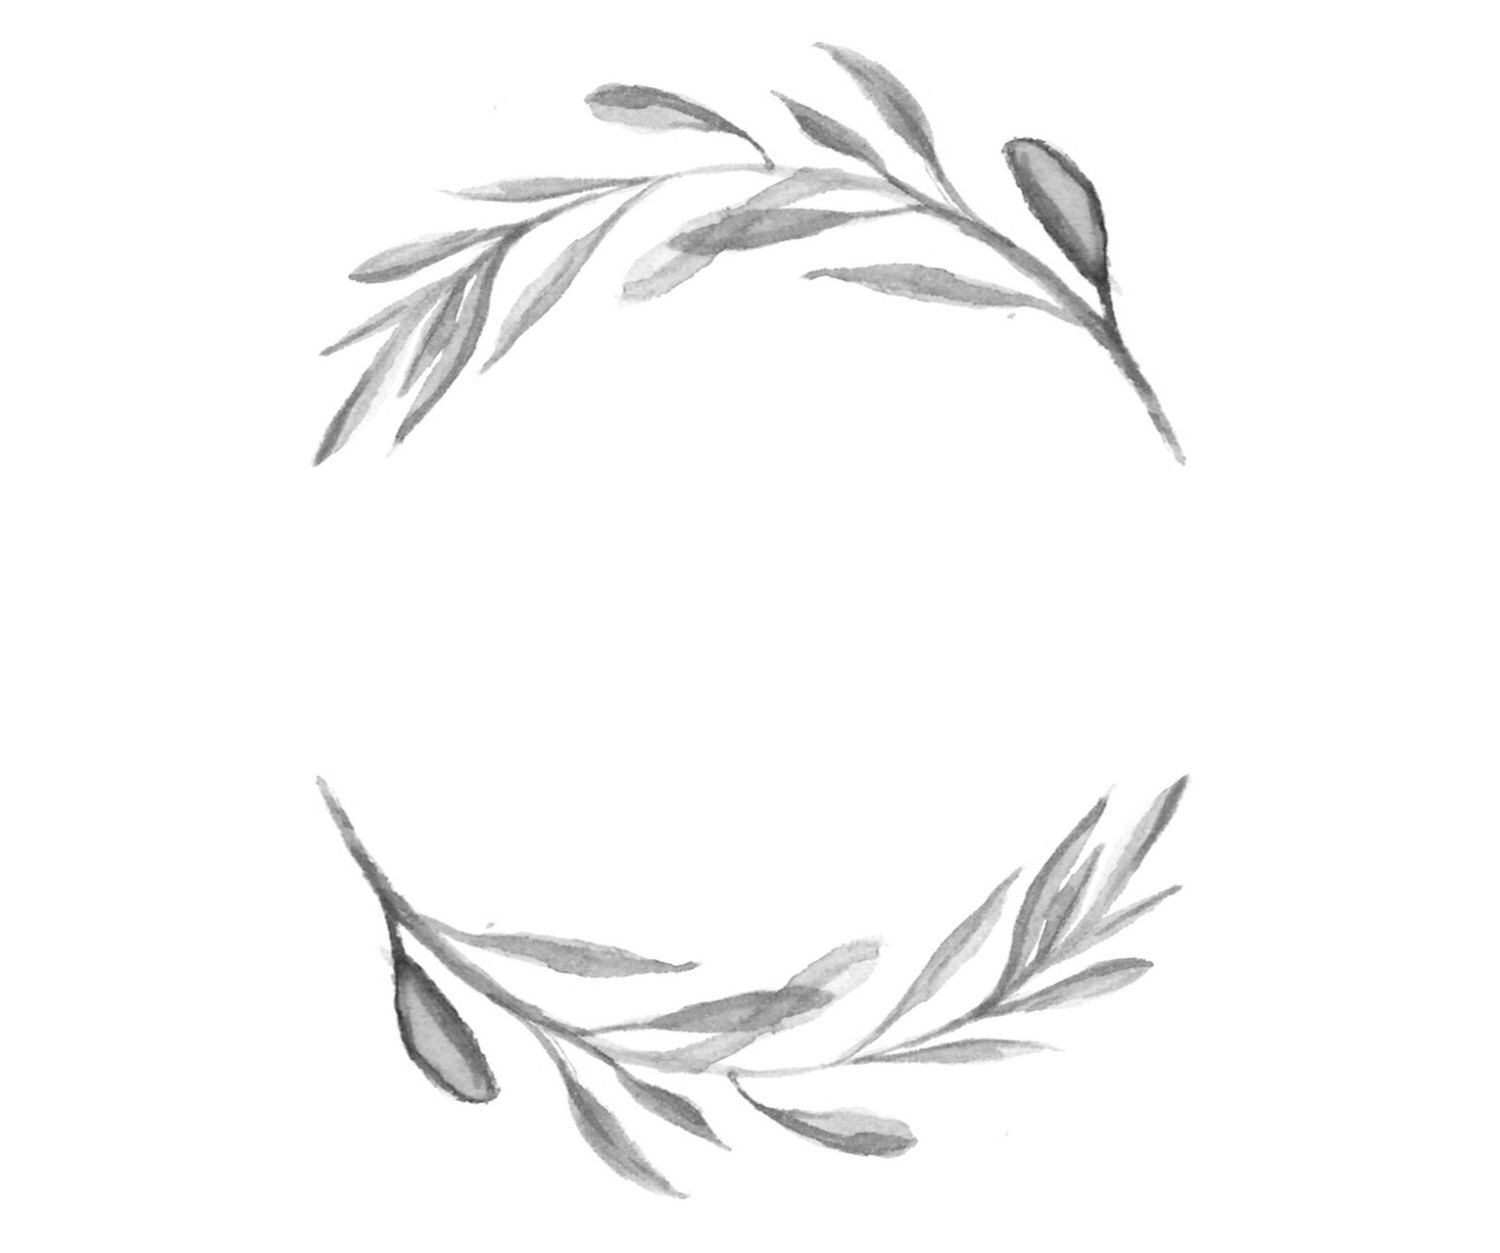 black and white watercolour wreath illustration by